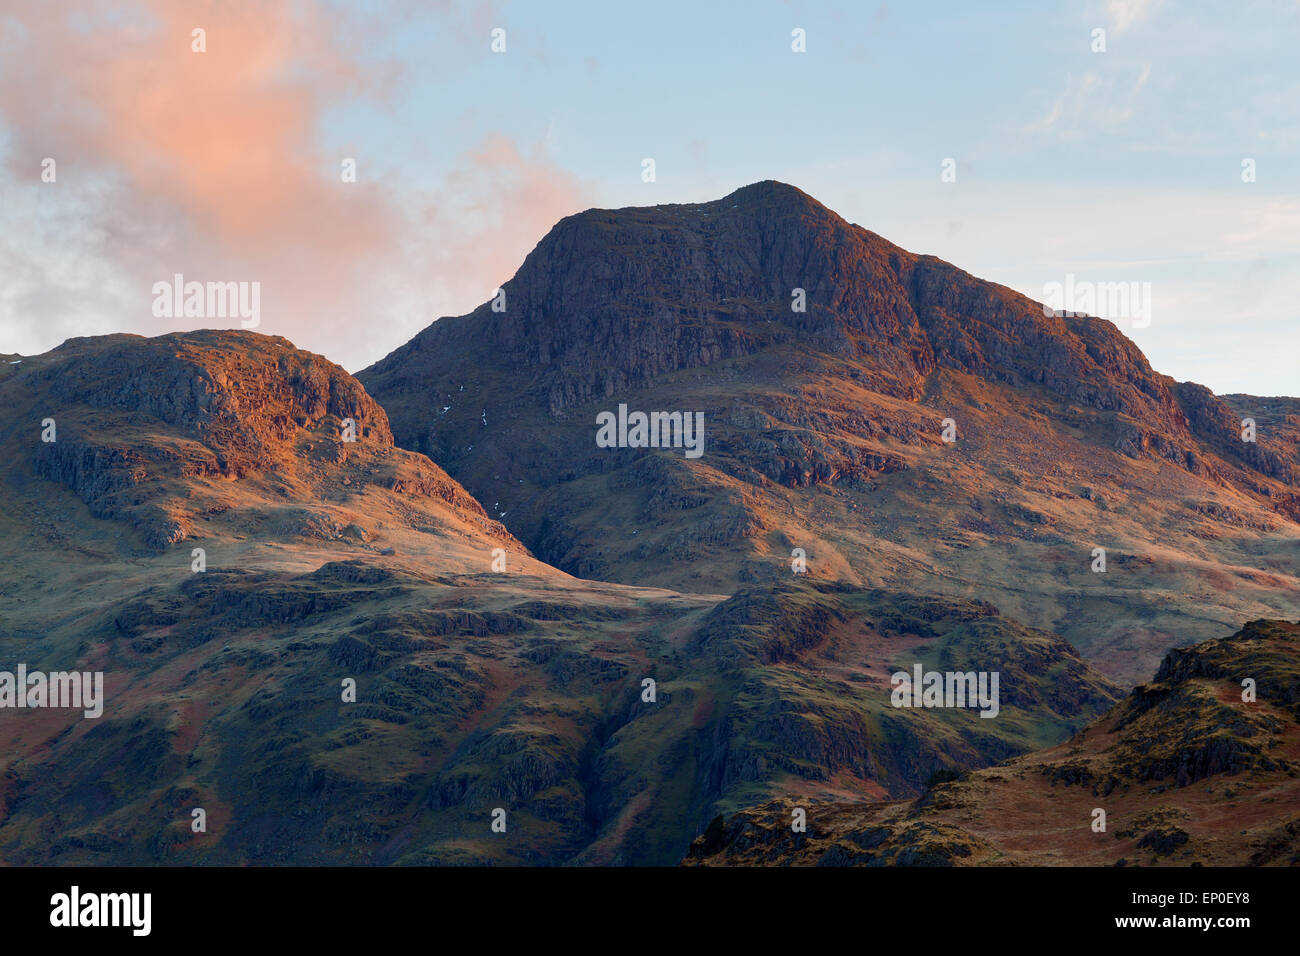 Pike of Stickle sidelit by soft morning light, ENglish lake District - Stock Image